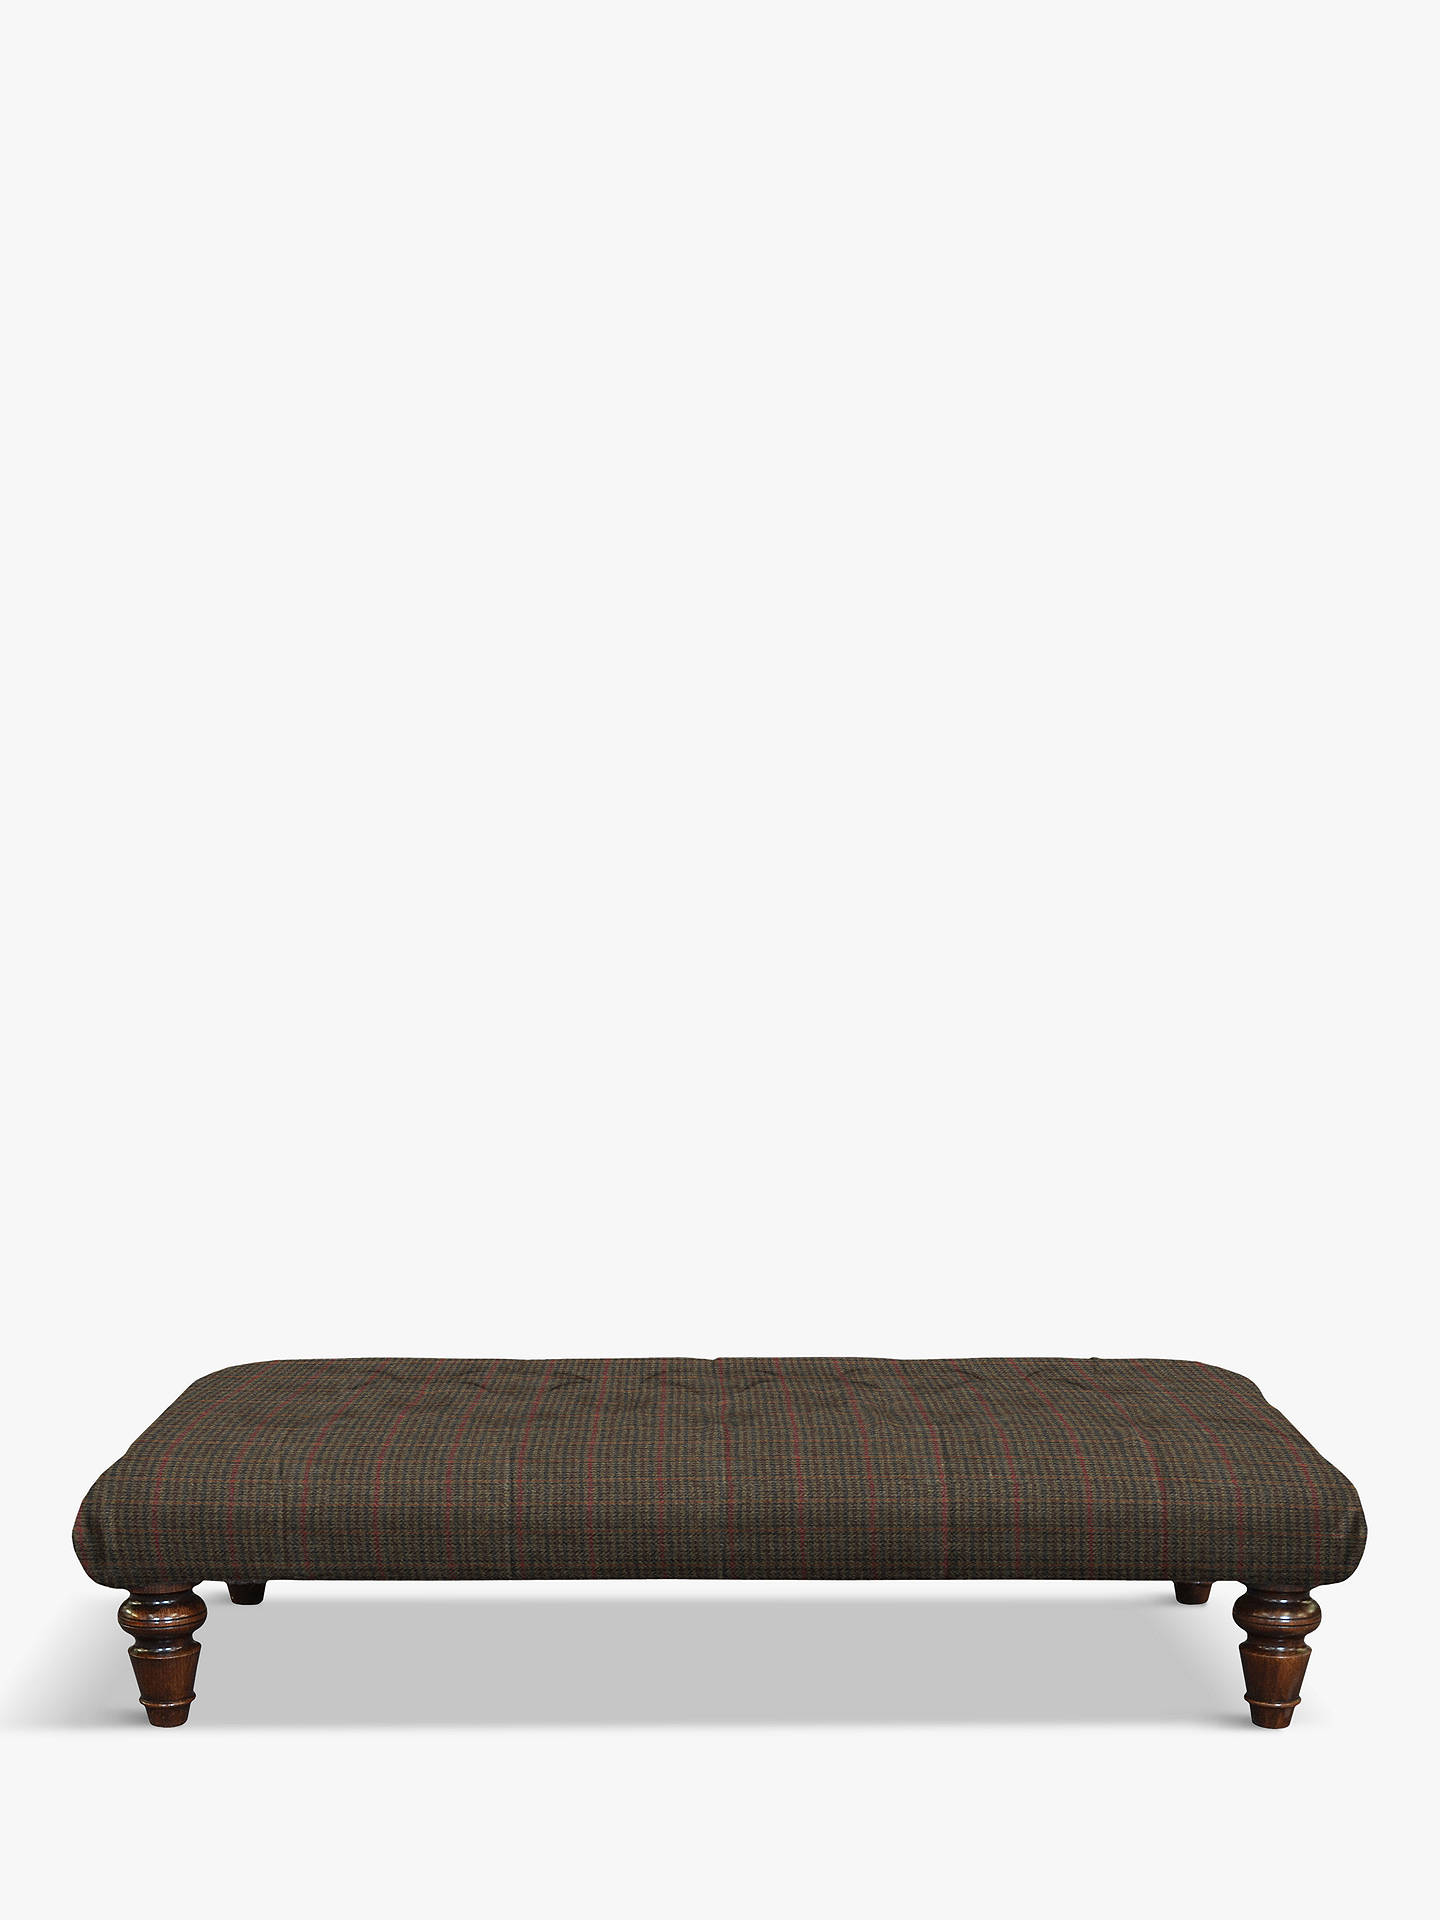 BuyTetrad Lewis Large Buttoned Top Footstool, Harris Tweed Dogtooth Check Online at johnlewis.com